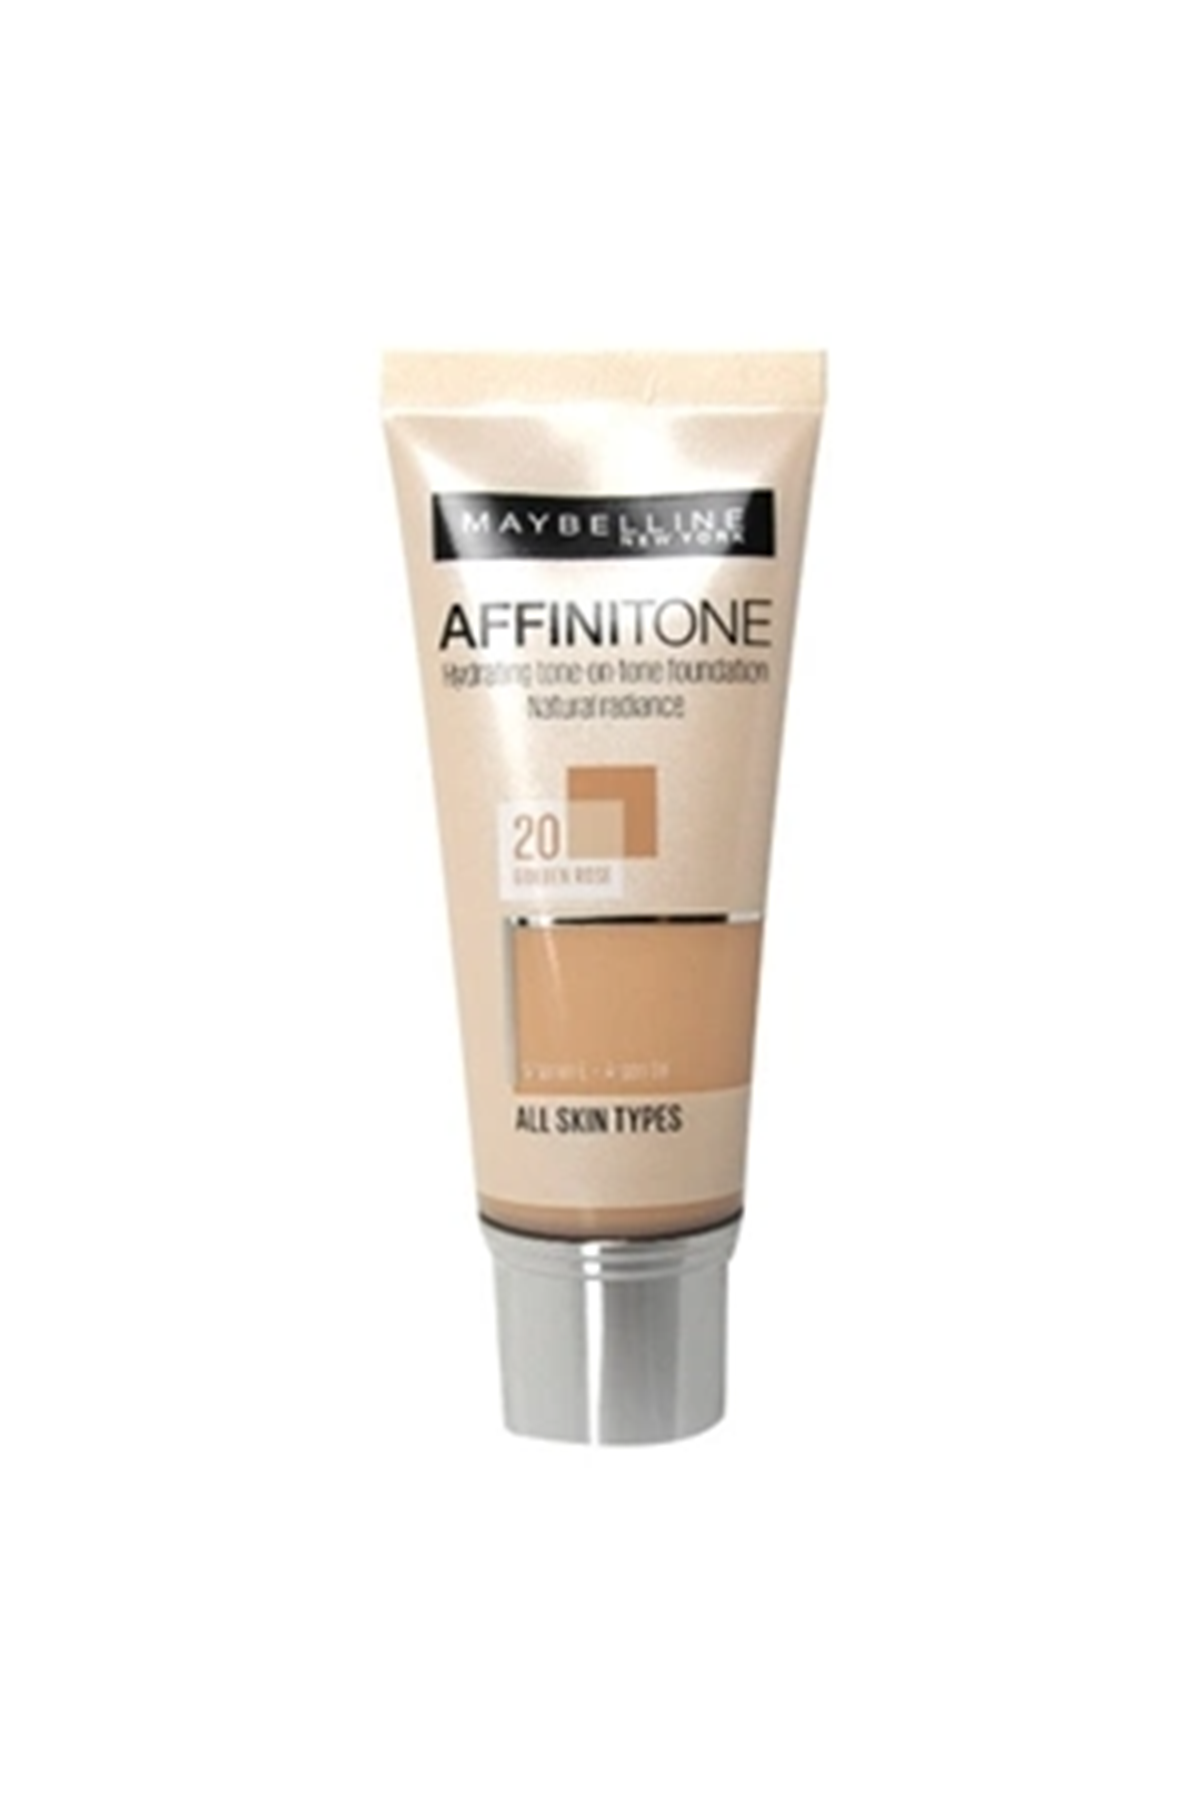 Maybelline New York Affinitone Kapatıcı ve Nemlendirici Fondöten Golden Rose 30 ml No: 20